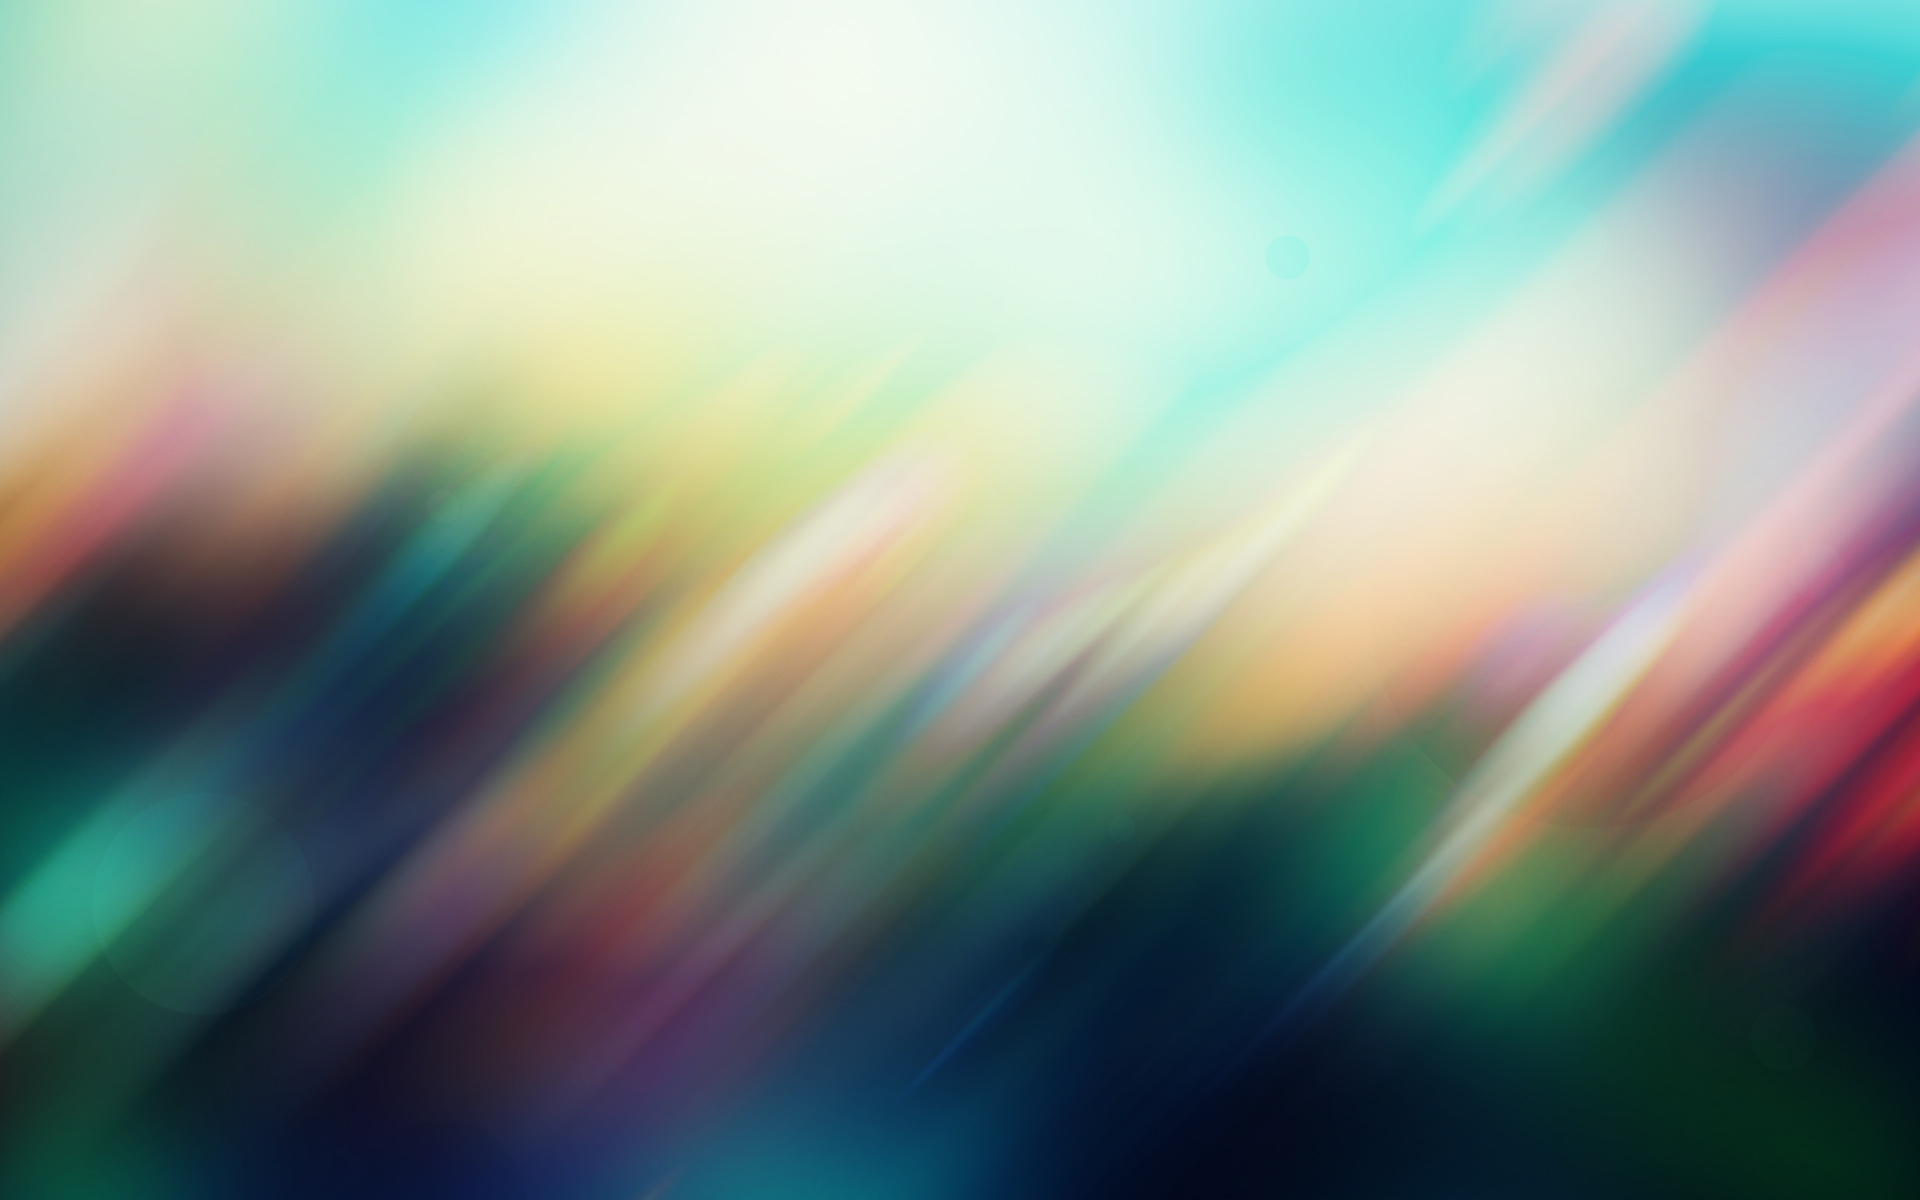 wallpaper blur